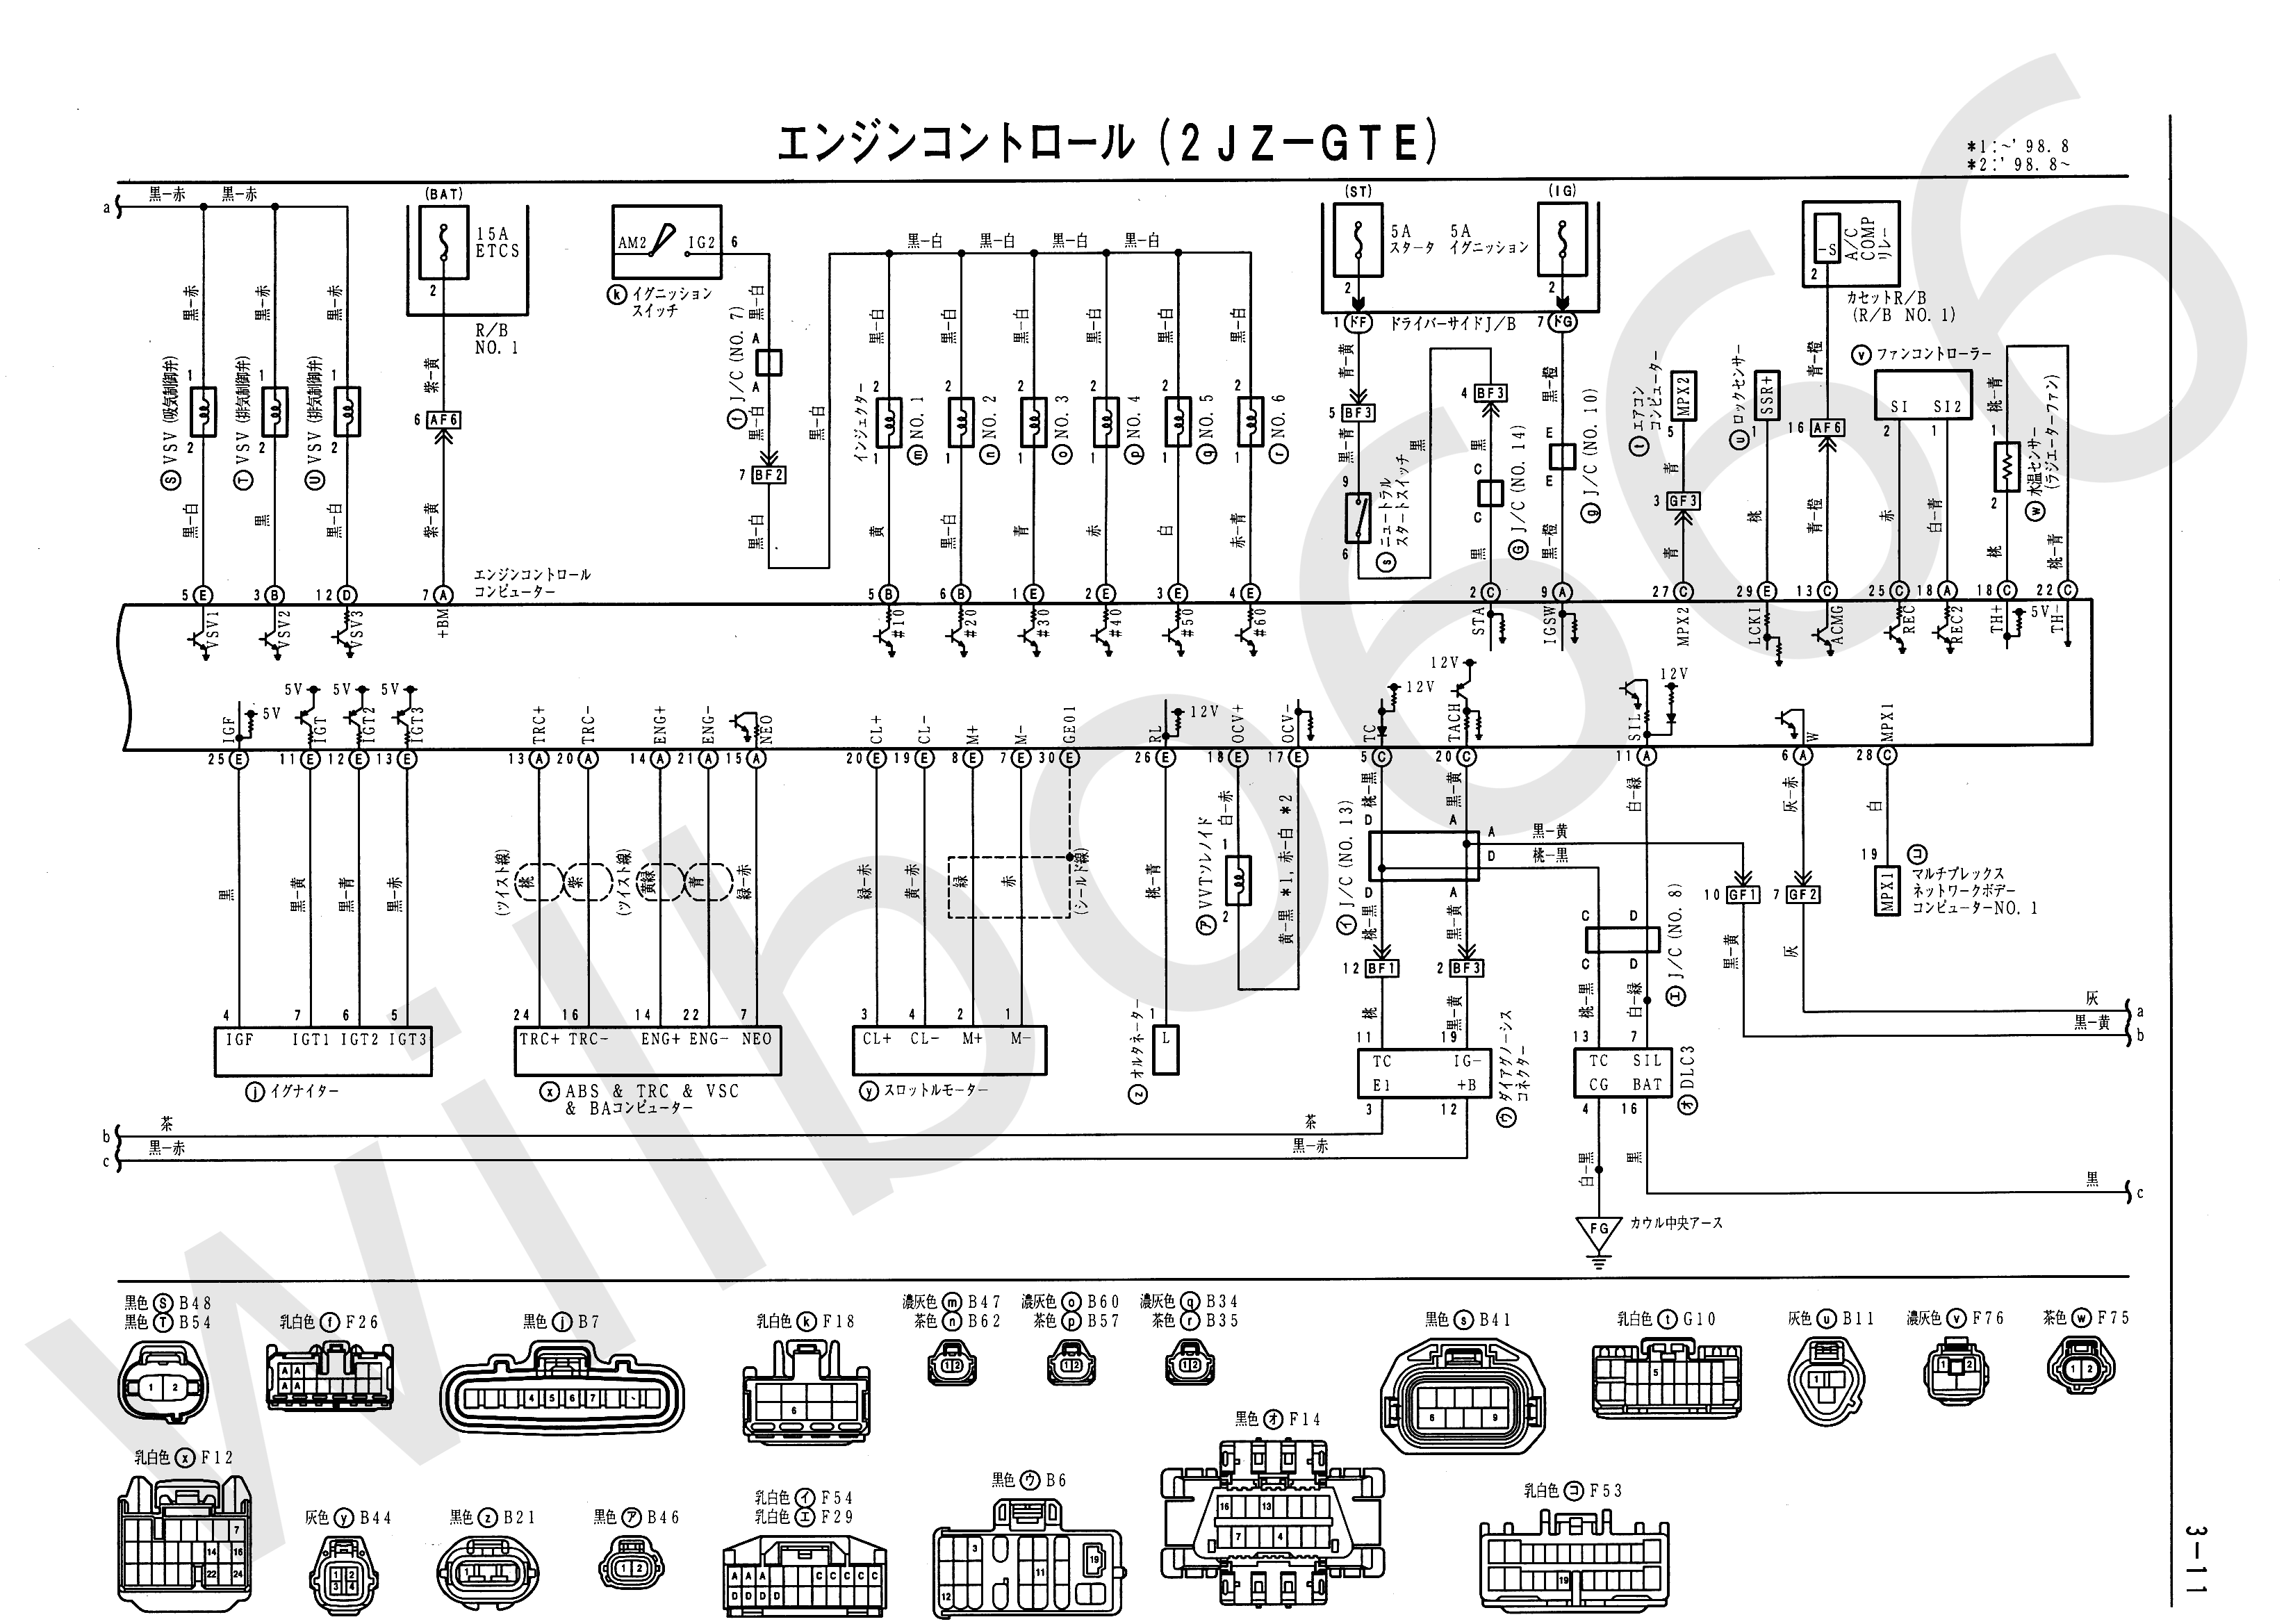 JZS161 Electrical Wiring Diagram 6748505 3 11 2jz wiring diagram 2jz wiring diagrams instruction  at panicattacktreatment.co